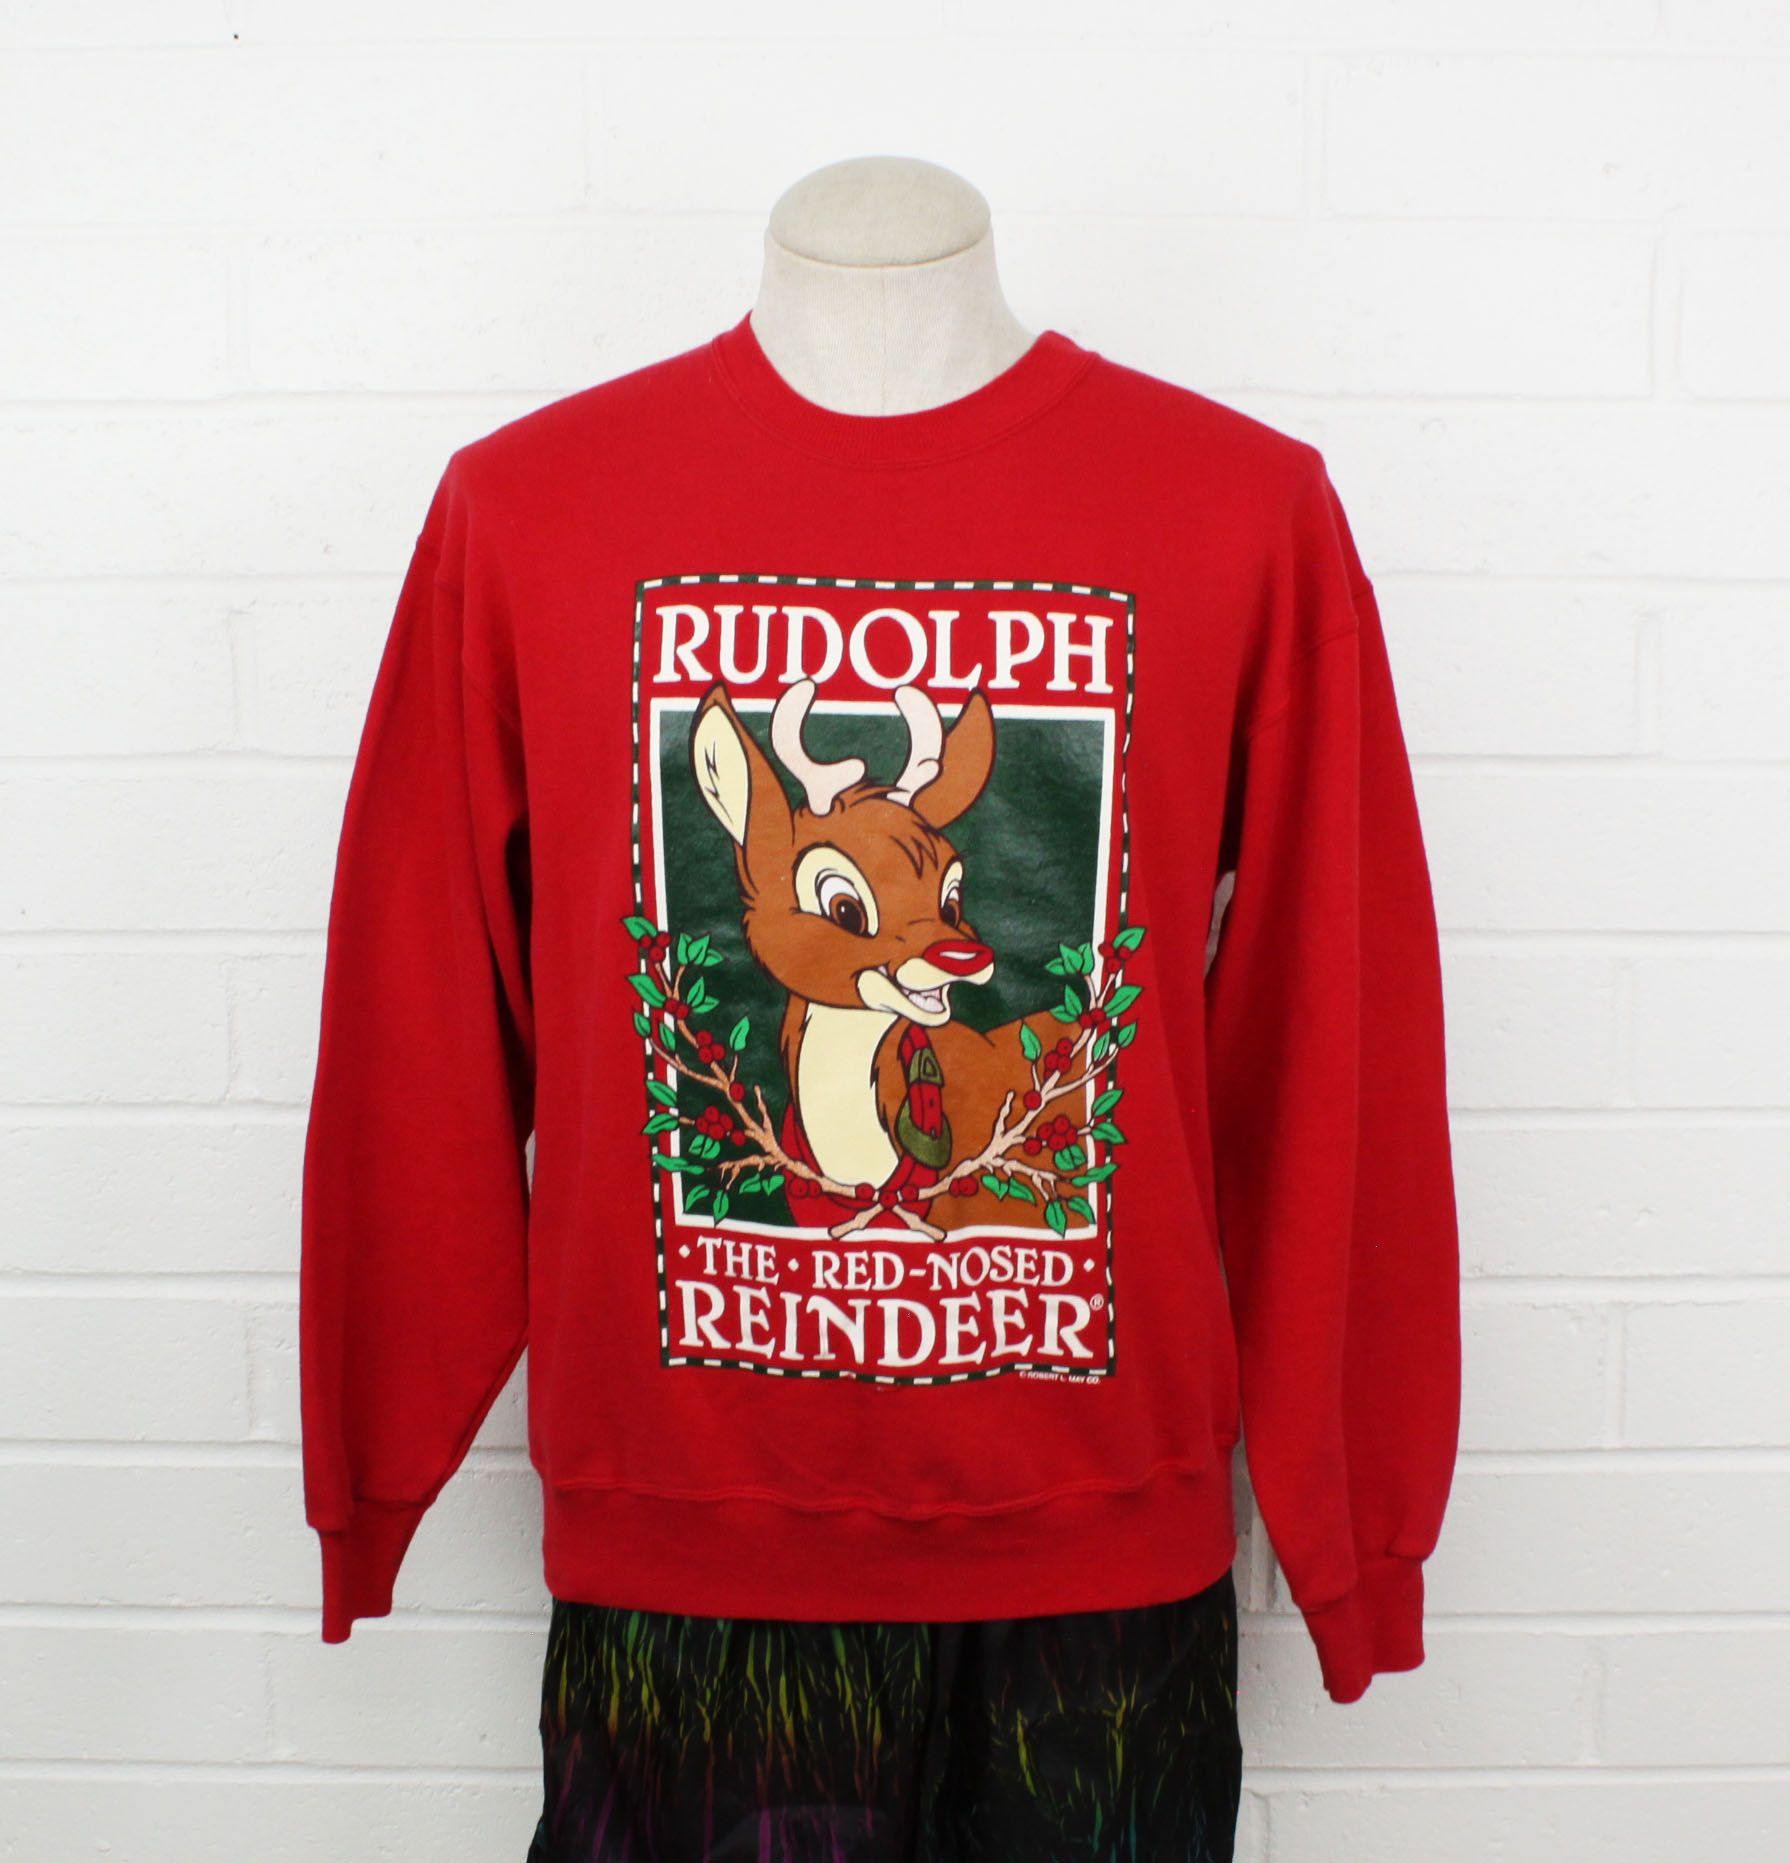 984bd6708 Vintage 90s Rudolph the Red-Nosed Reindeer Christmas Cartoon ...